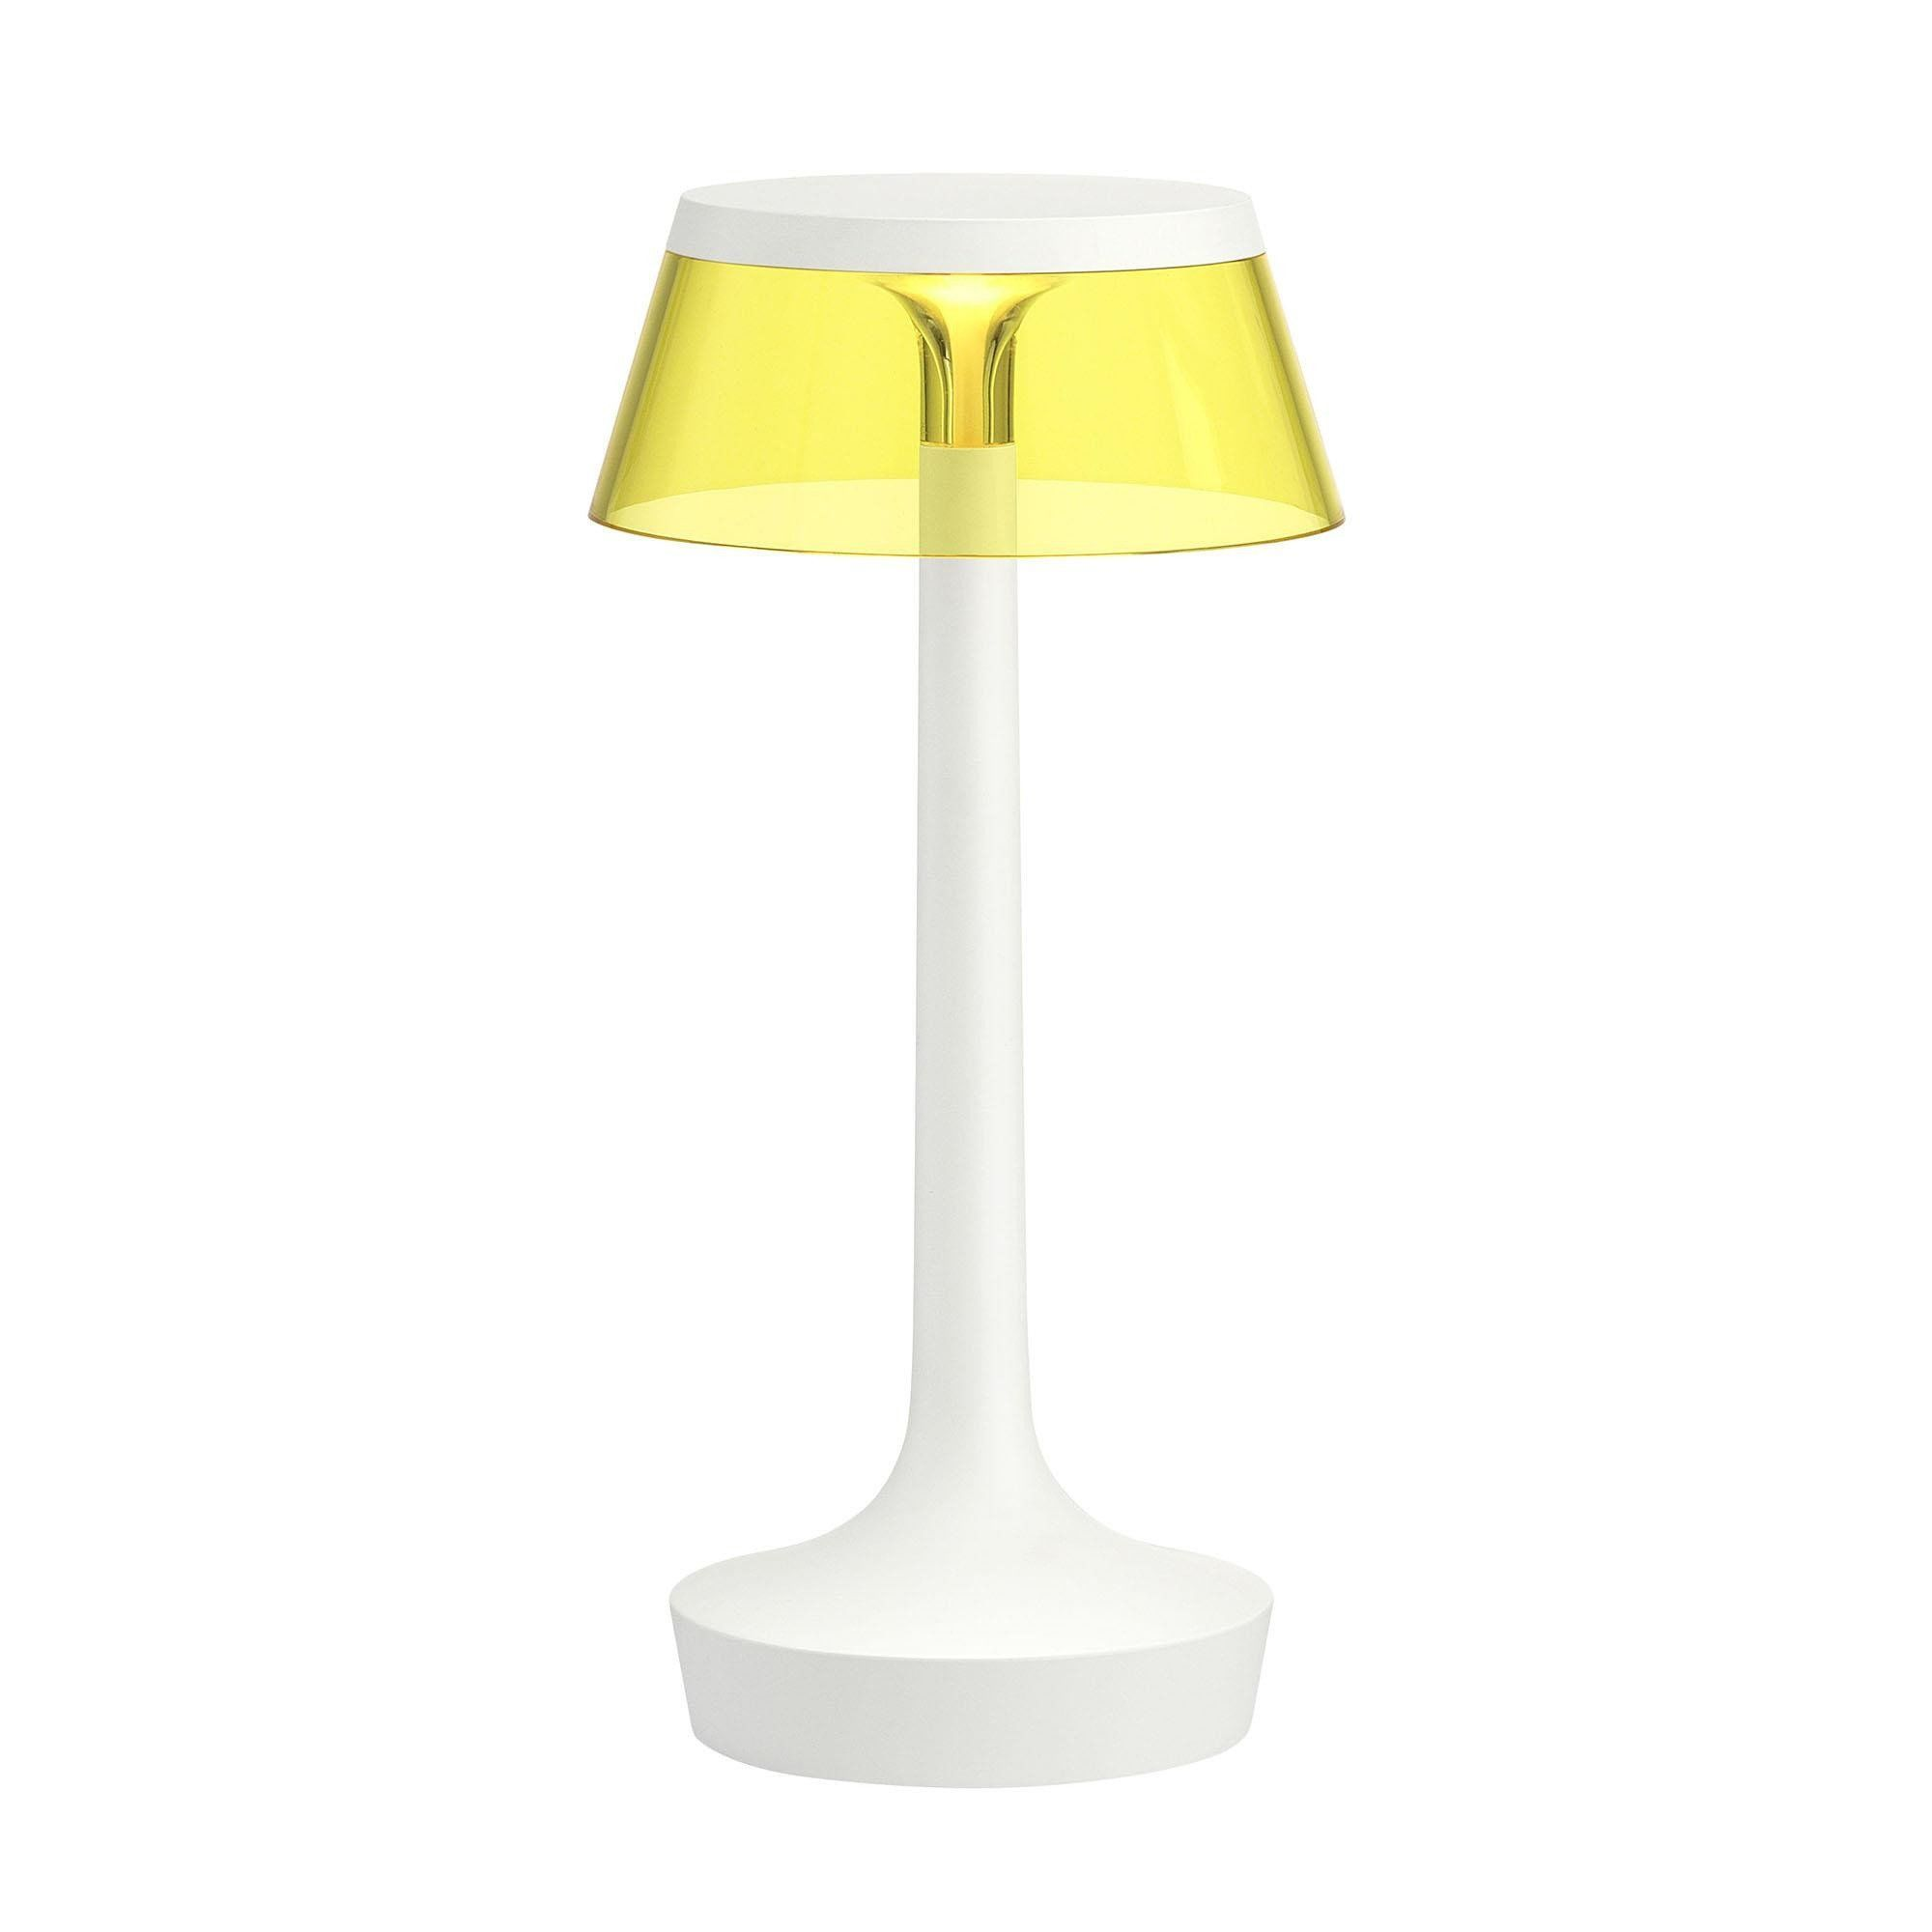 Flos   Bon Jour Unplugged LED Table Lamp White   Yellow/transparent/shade: